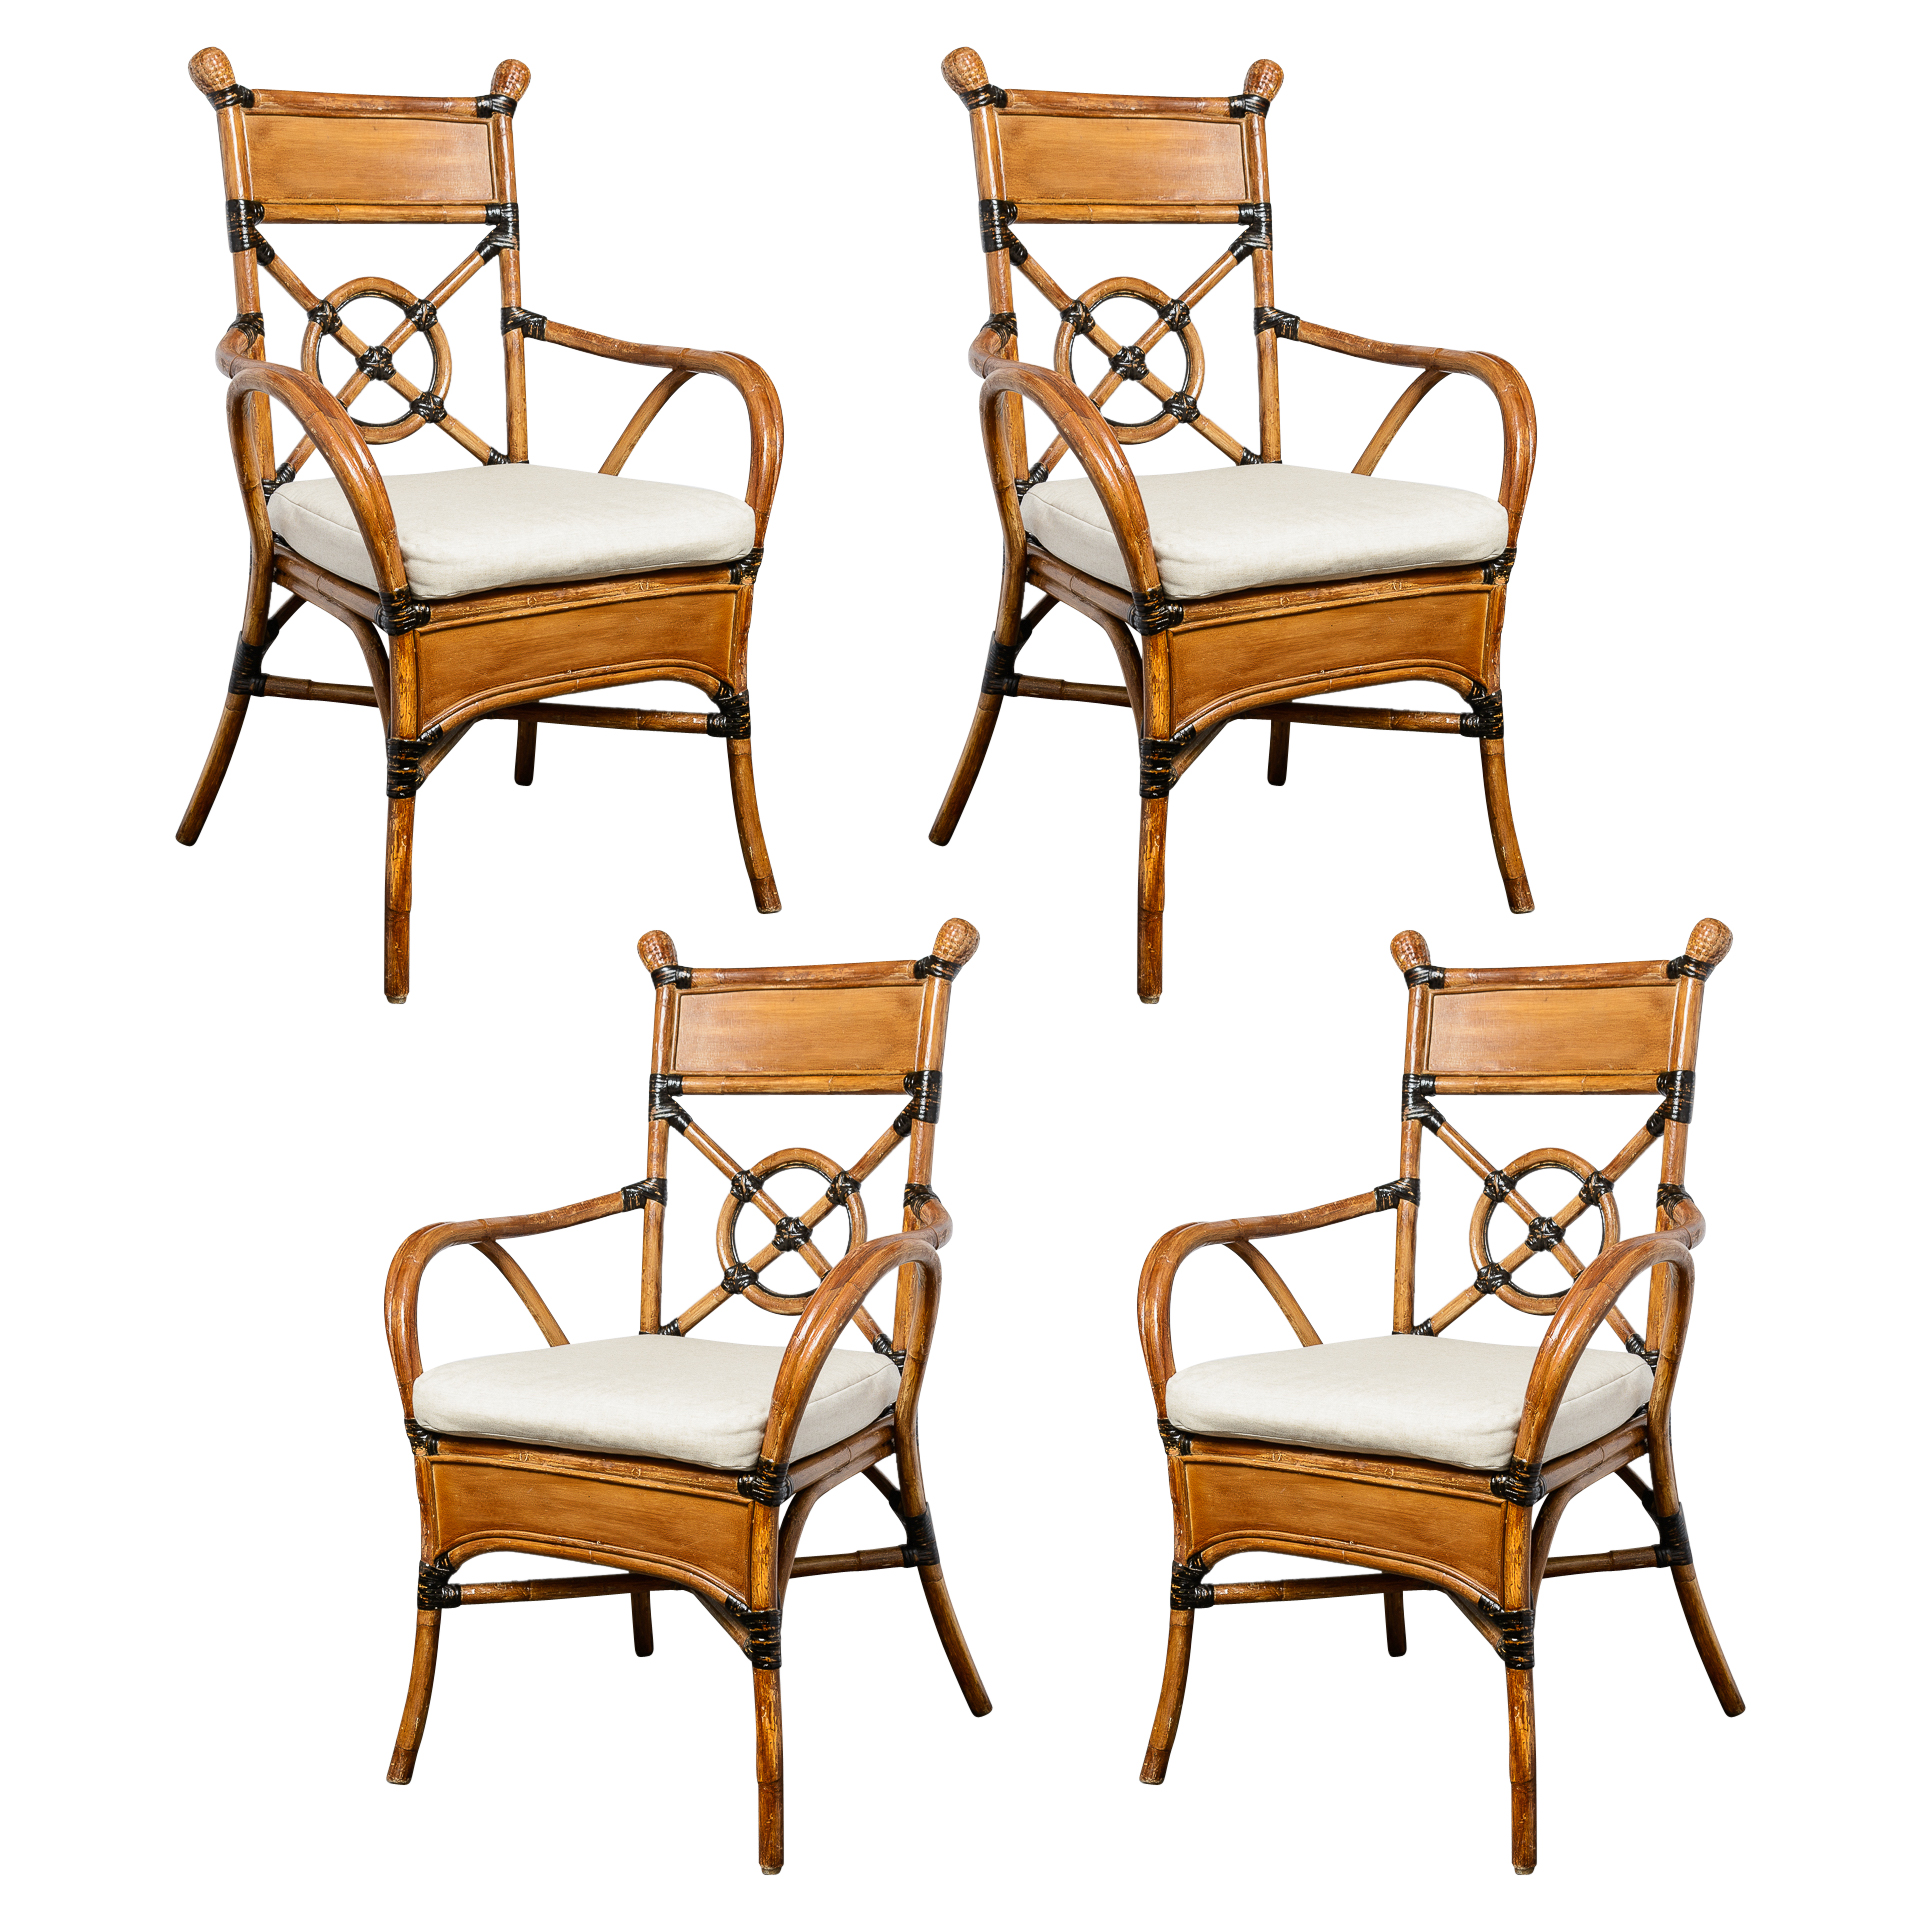 French Bamboo Rattan Set Of Four Chairs C 1950 On